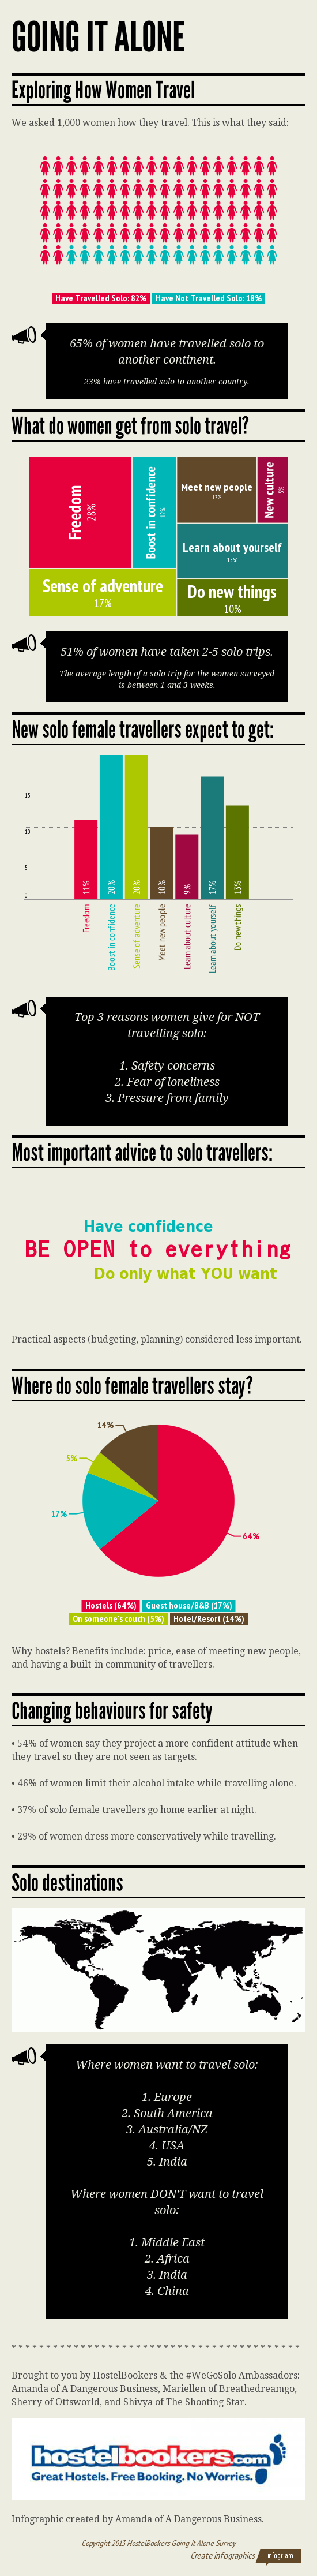 women travelling solo, women travelling alone, solo female travel